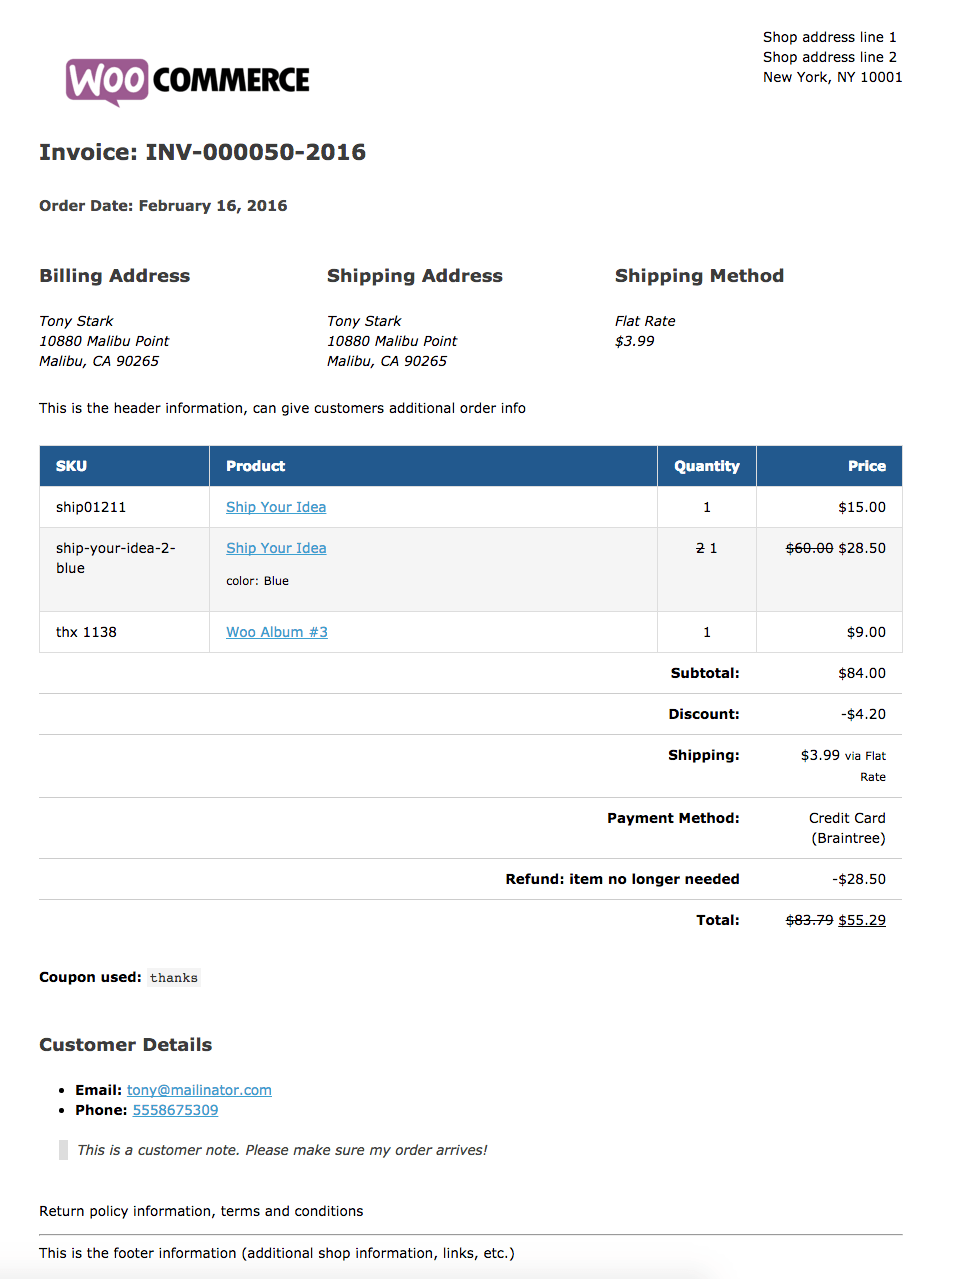 Centralasianshepherdus  Winning Print Invoices Amp Packing Lists  Woocommerce With Likable View A Sample Invoice  With Charming Victoria Secret Return Policy No Receipt Also Usps Receipt In Addition Facebook Read Receipts And Confirm Receipt Of Email As Well As H M Return Without Receipt Additionally Organize Receipts From Woocommercecom With Centralasianshepherdus  Likable Print Invoices Amp Packing Lists  Woocommerce With Charming View A Sample Invoice  And Winning Victoria Secret Return Policy No Receipt Also Usps Receipt In Addition Facebook Read Receipts From Woocommercecom